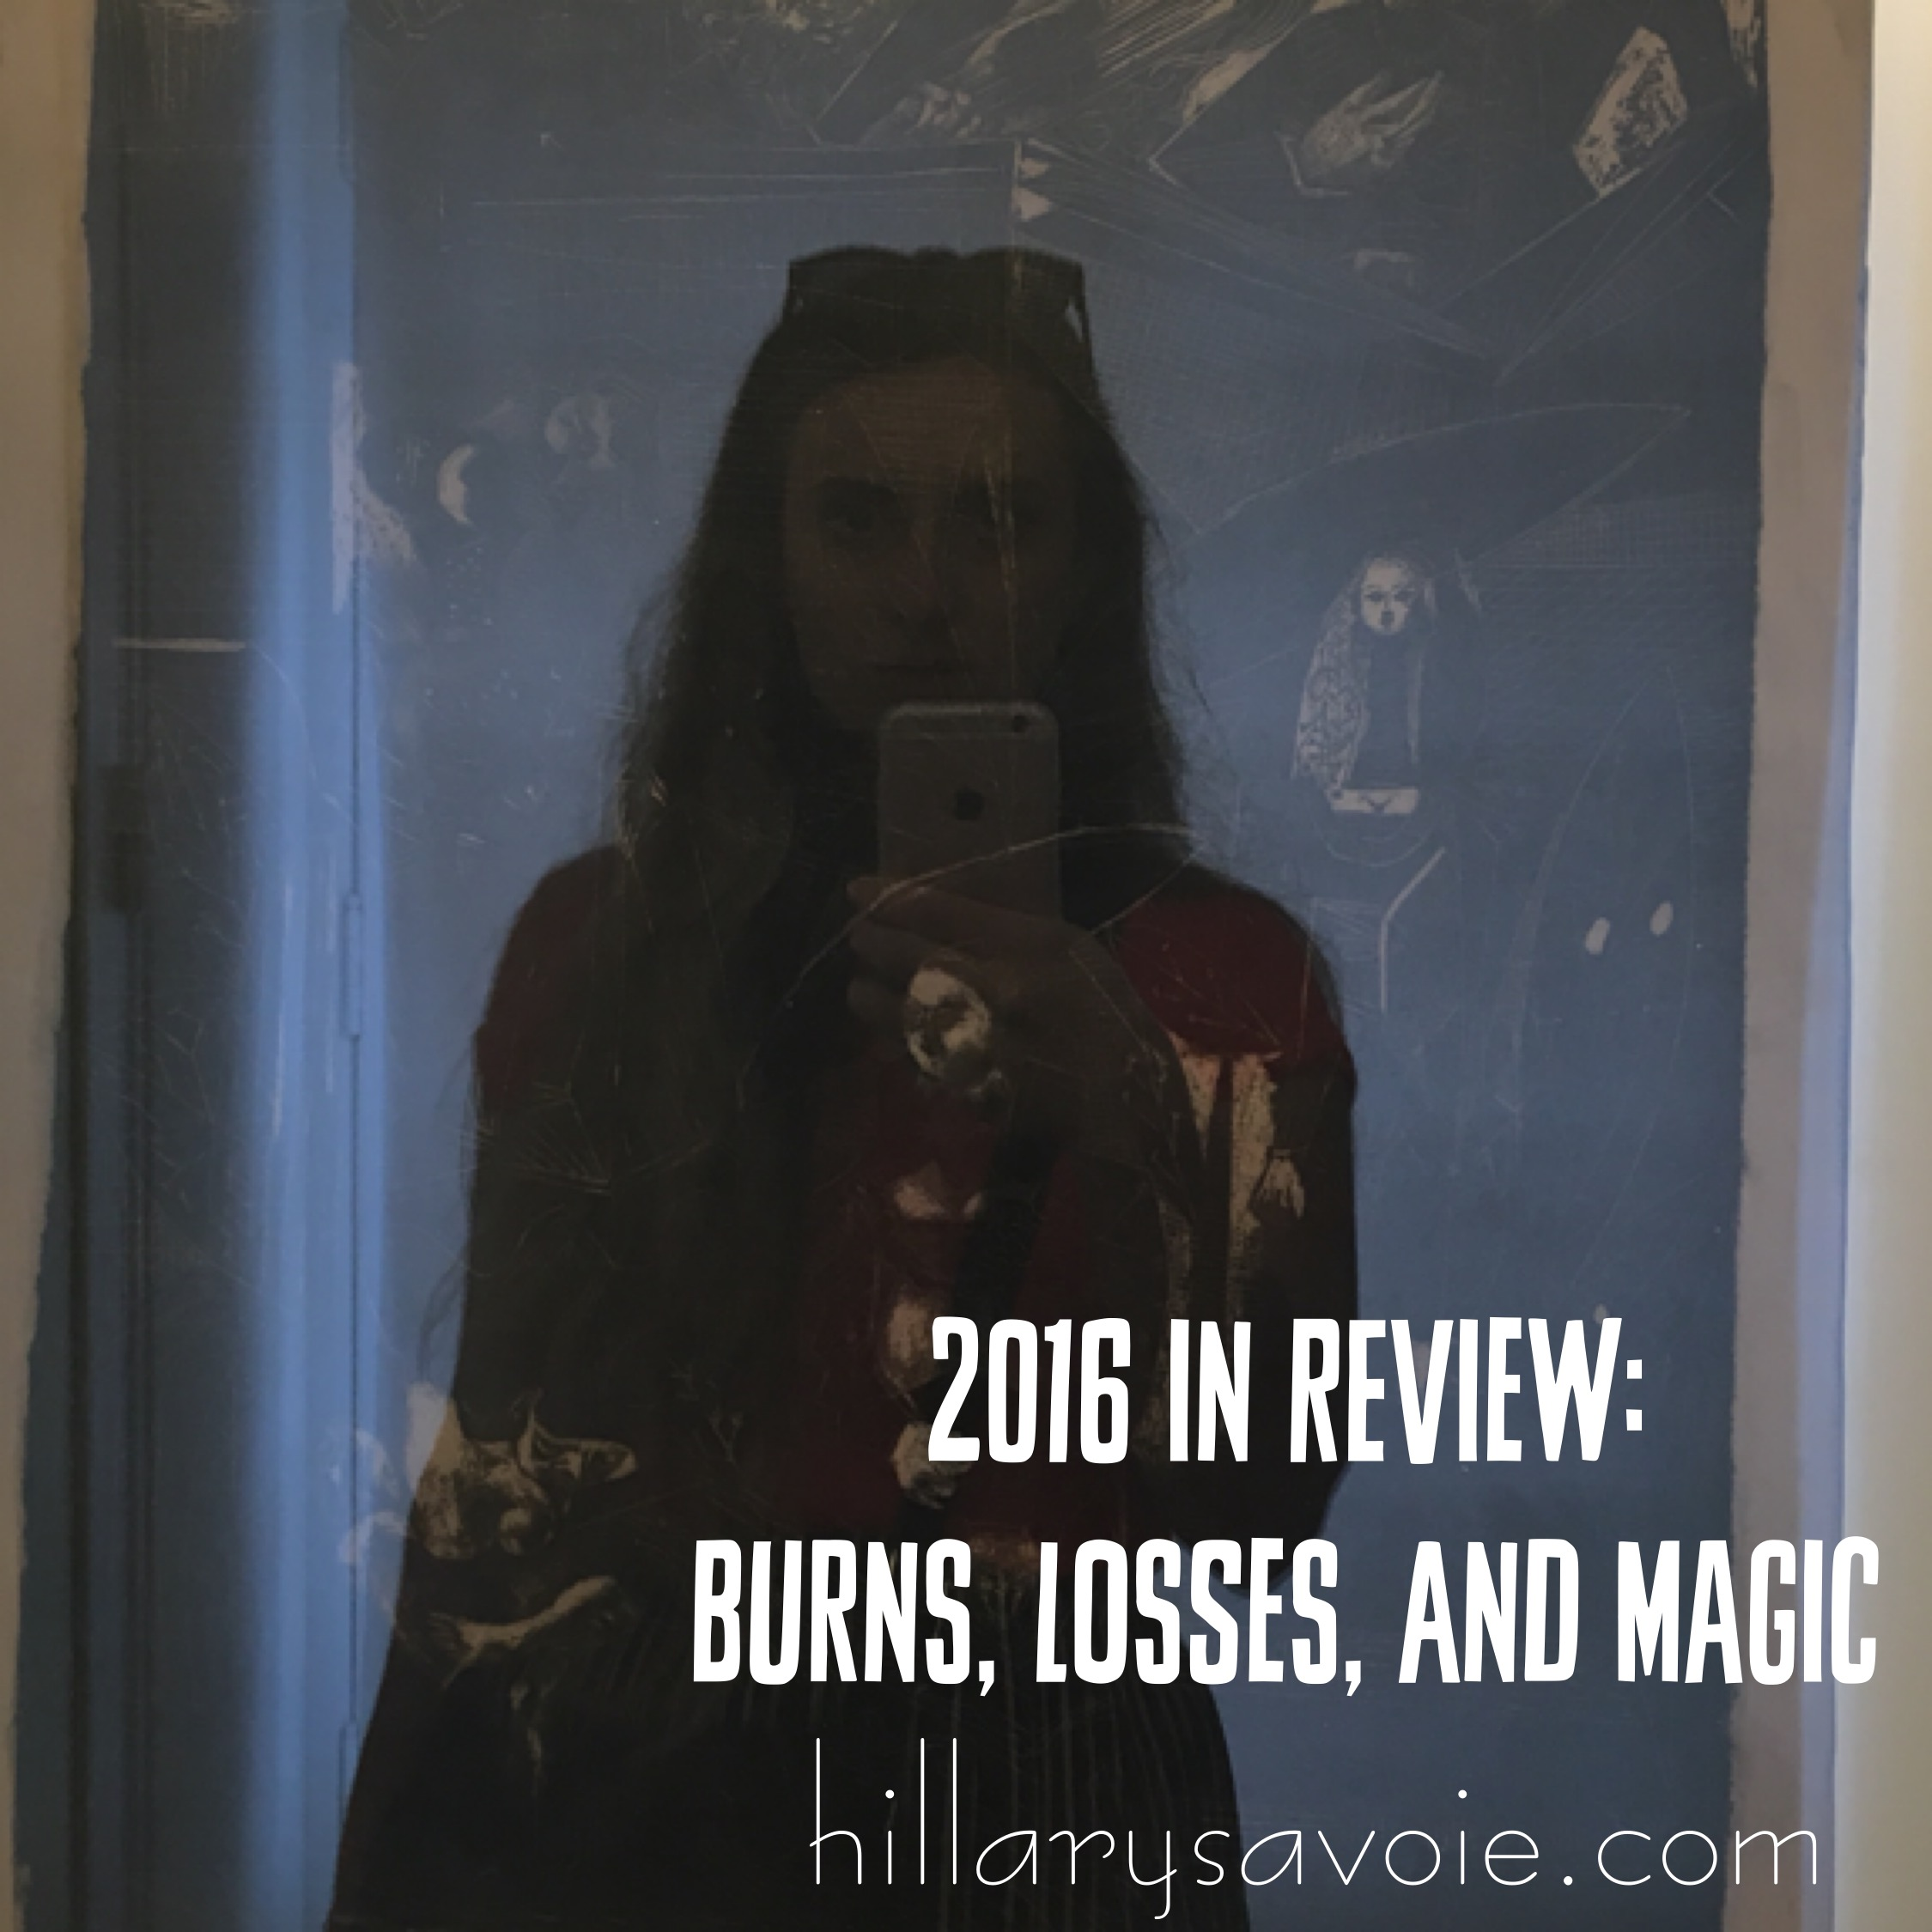 2016 In Review: Burns, Losses, and Magic